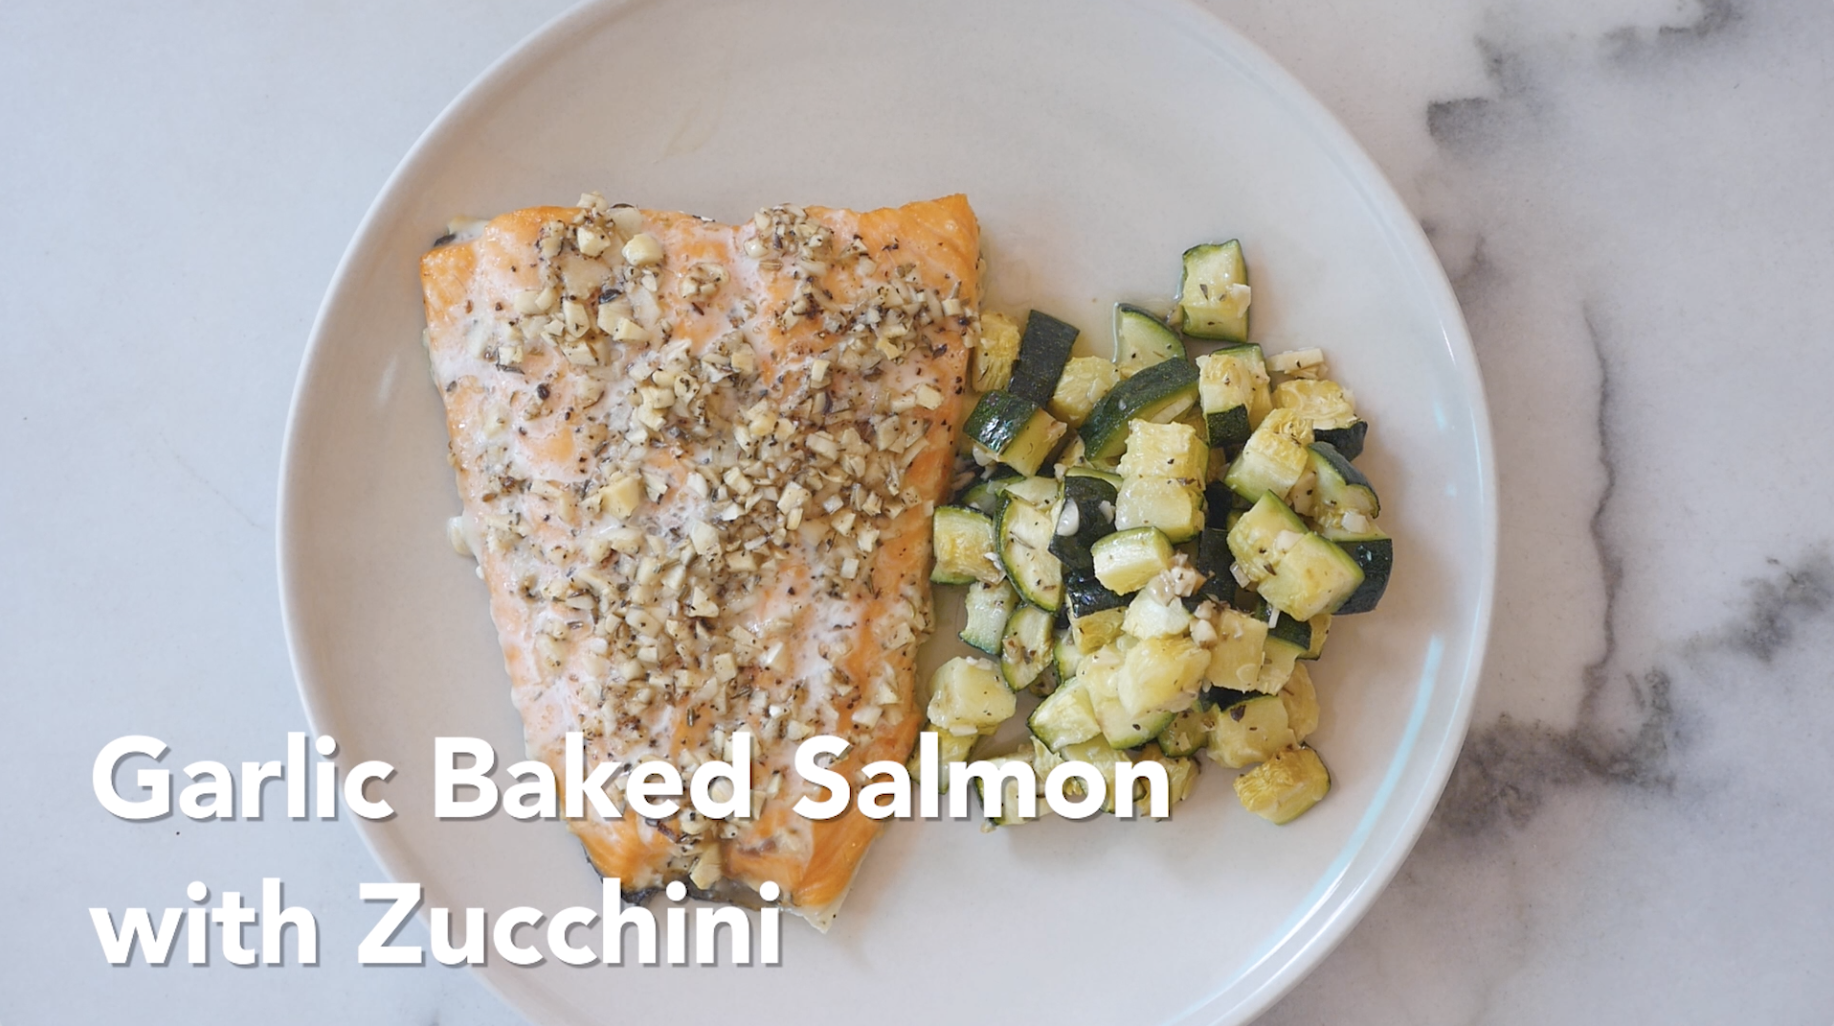 GARLIC BAKED SALMON ZUCCHINI | Food Good for Skin #HealthEssentialsCooks